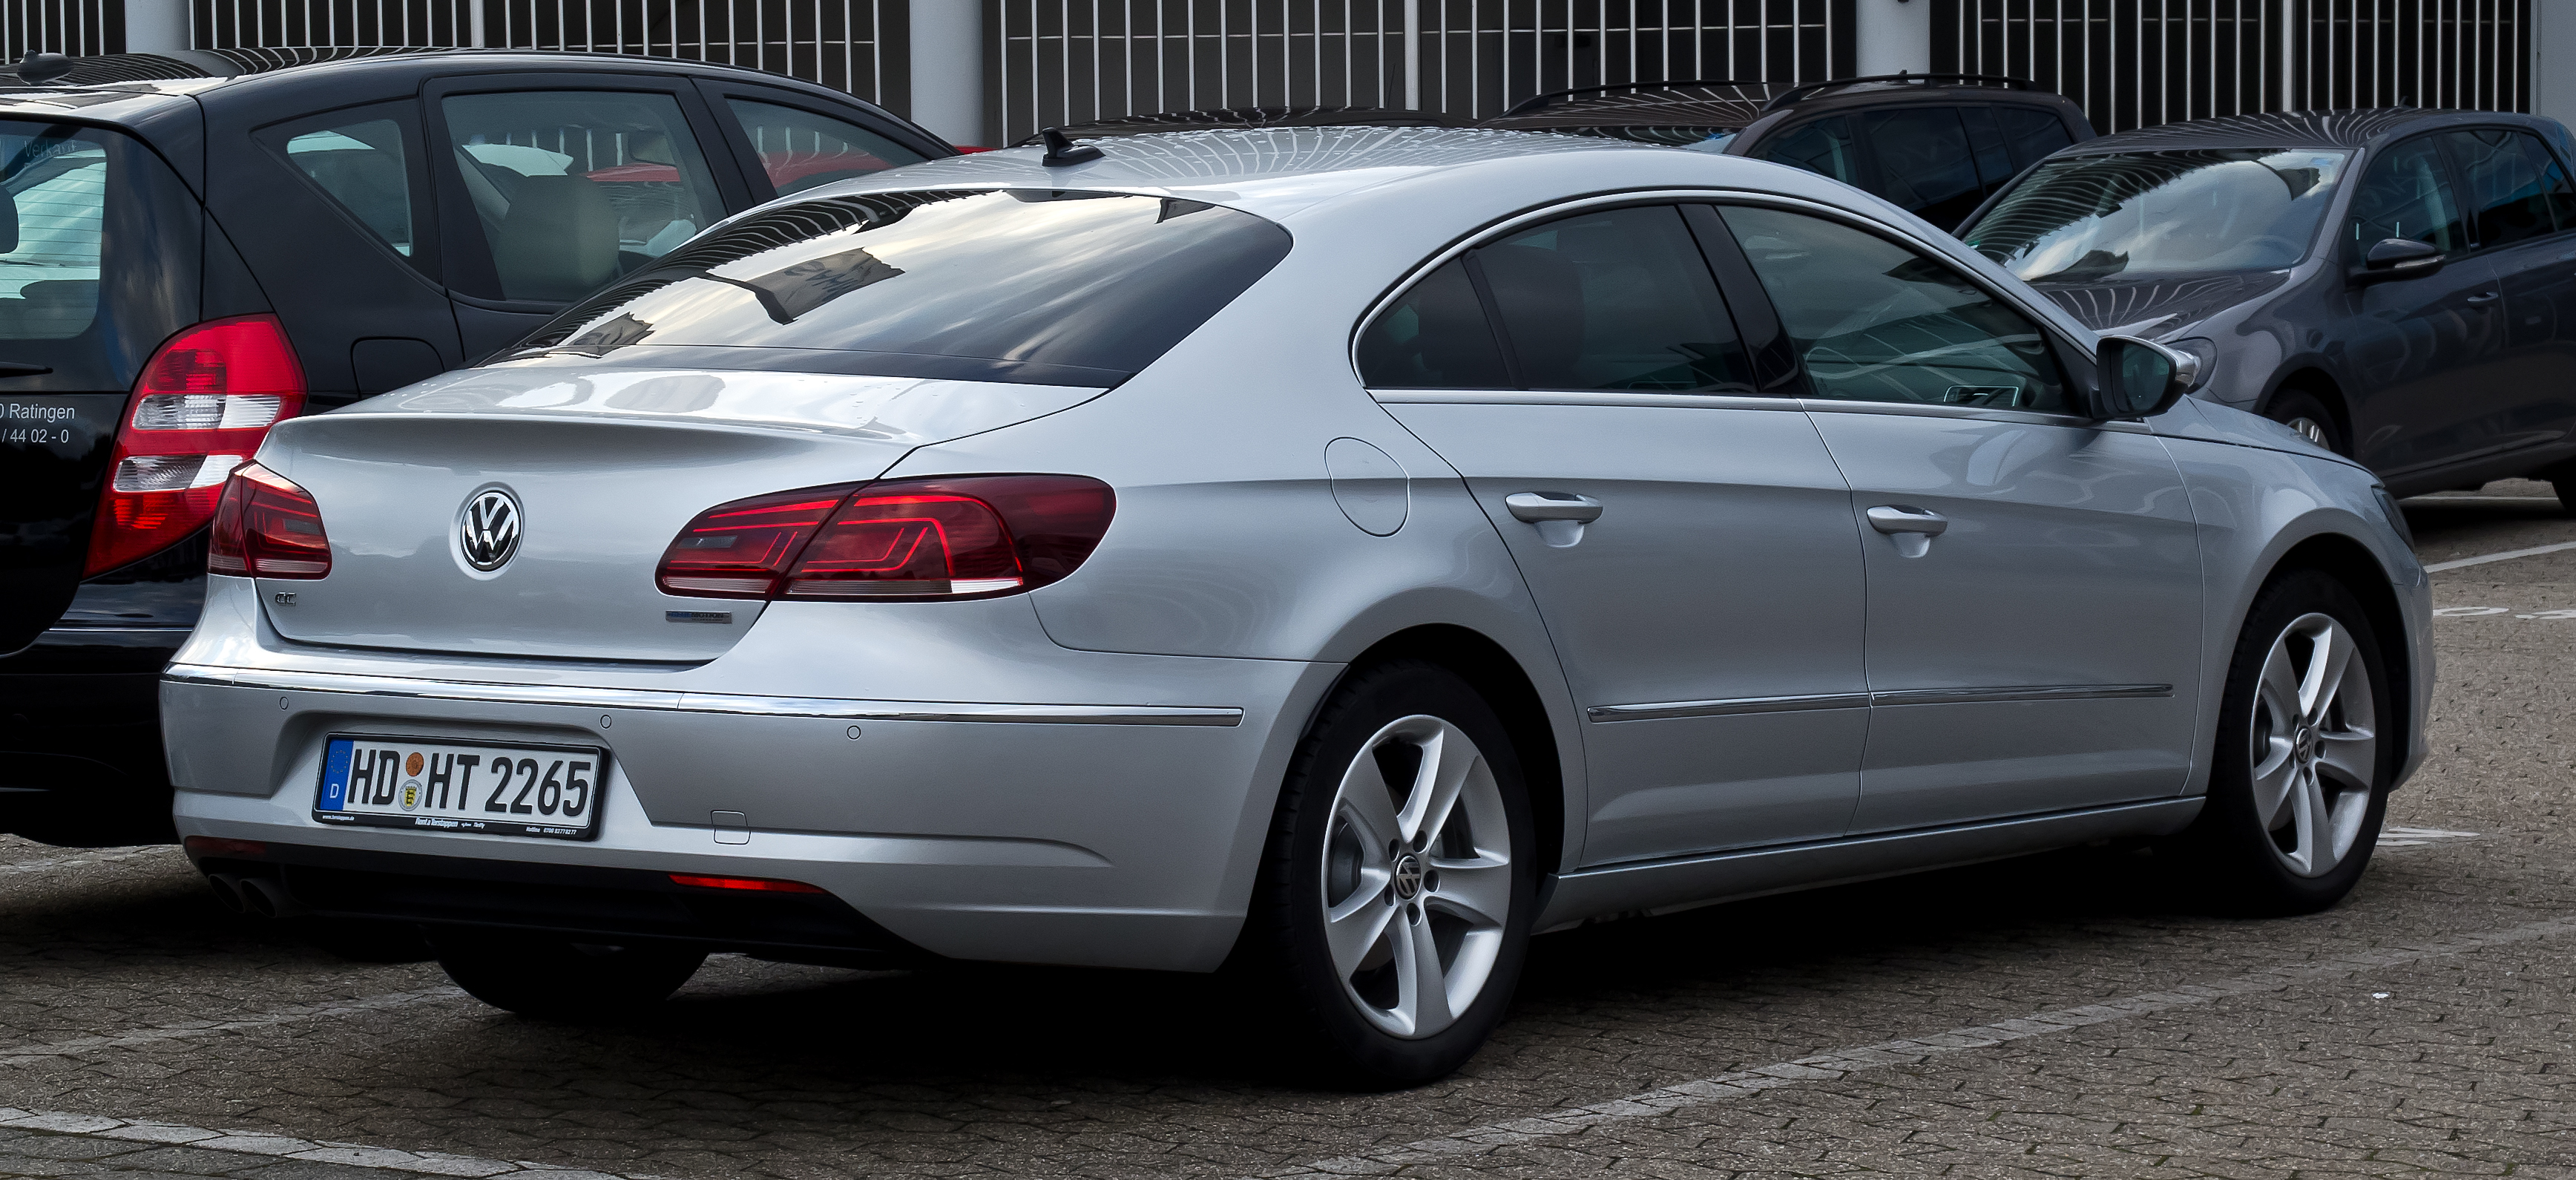 File:VW CC 2.0 TDI BlueMotion Technology (Facelift ...